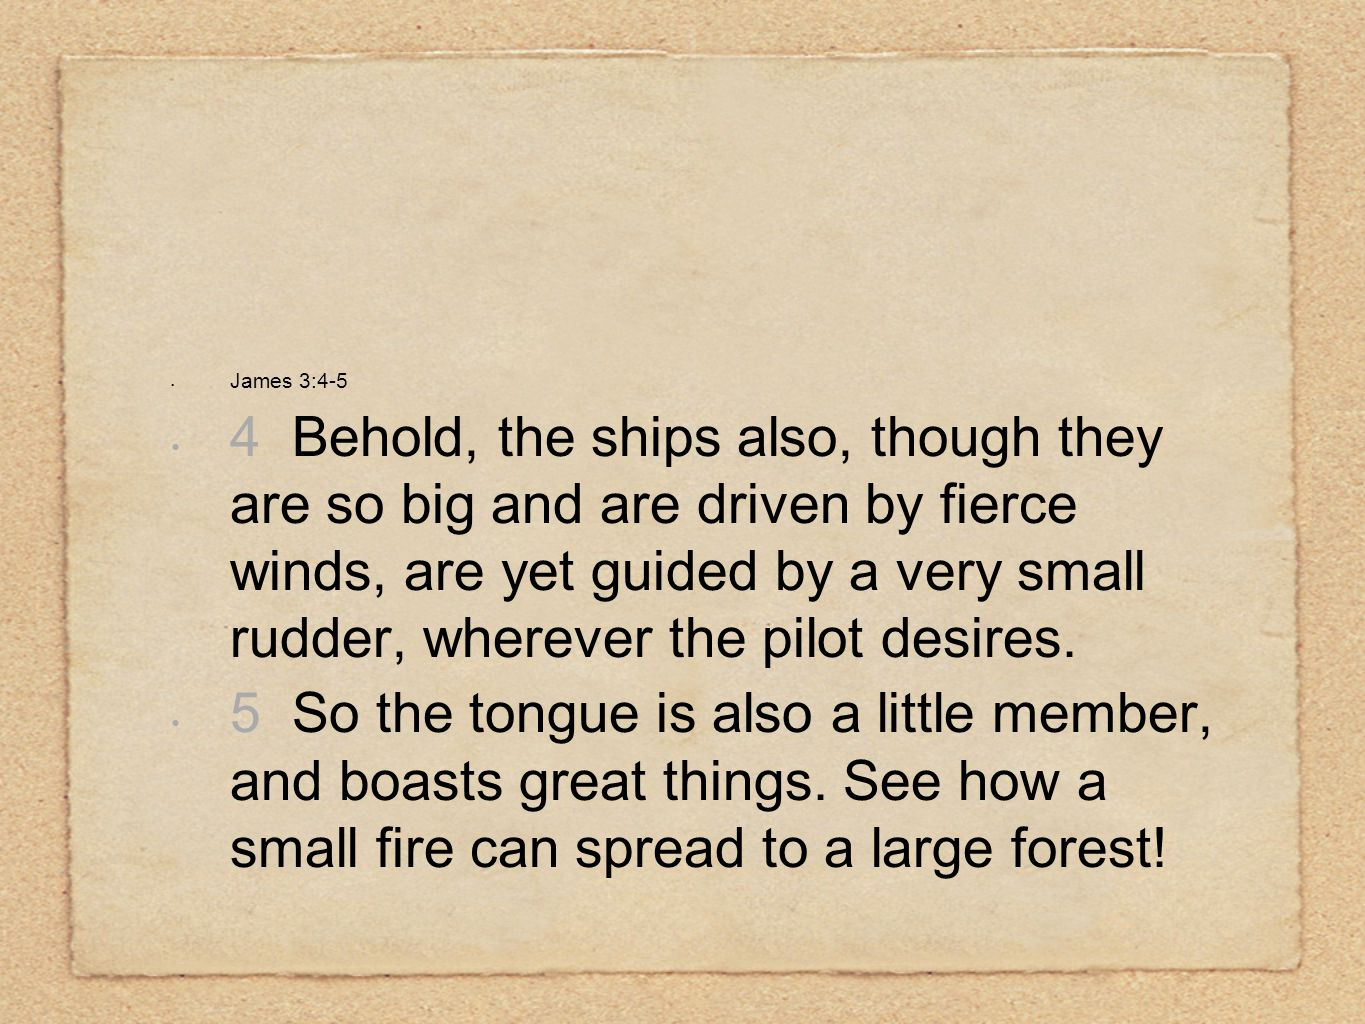 James 3:4-5 4 Behold, the ships also, though they are so big and are driven by fierce winds, are yet guided by a very small rudder, wherever the pilot desires.